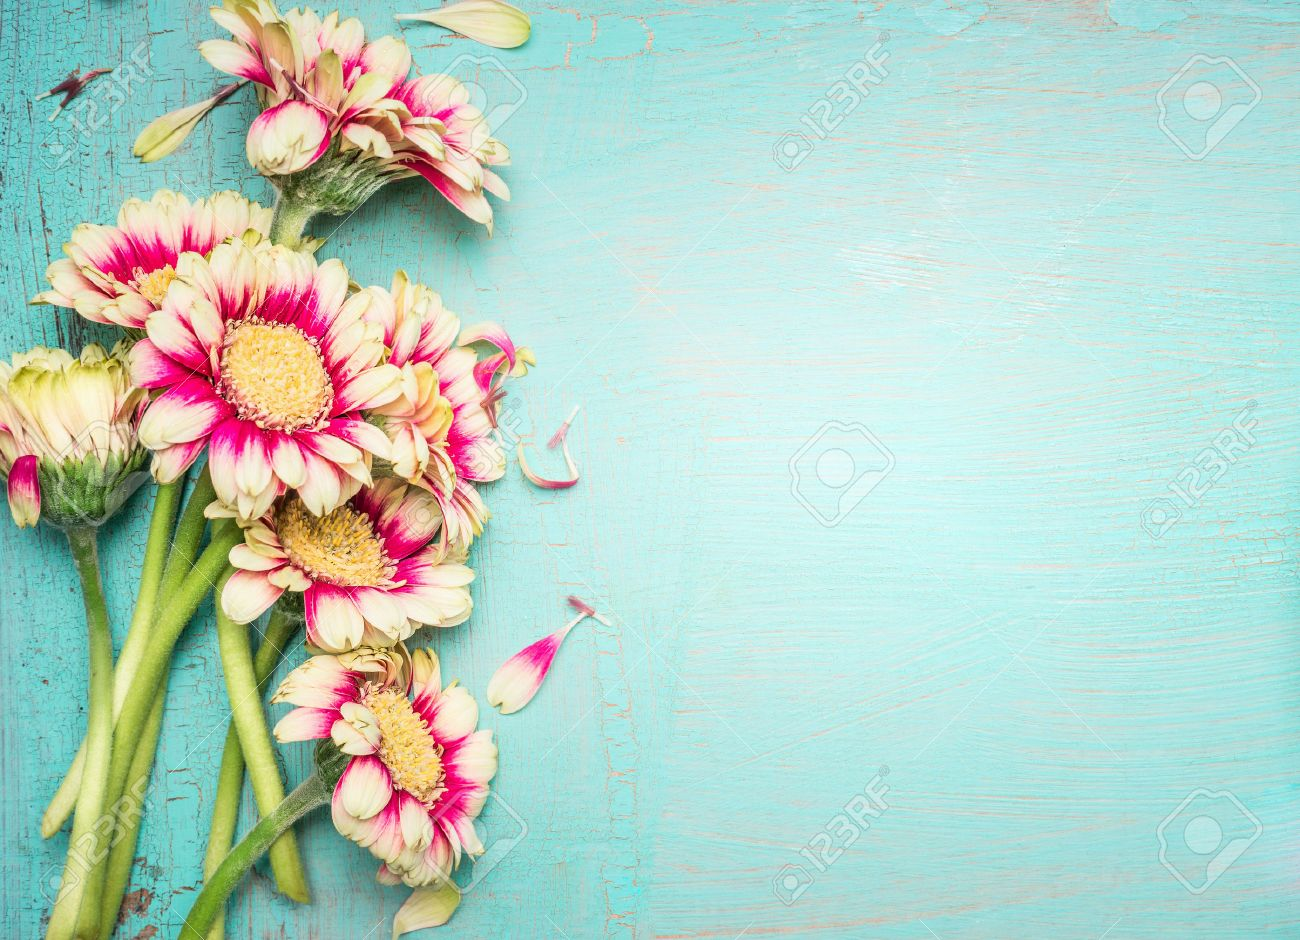 Lovely Flowers On Turquoise Shabby Chic Background Festive Greeting Card Stock Photo